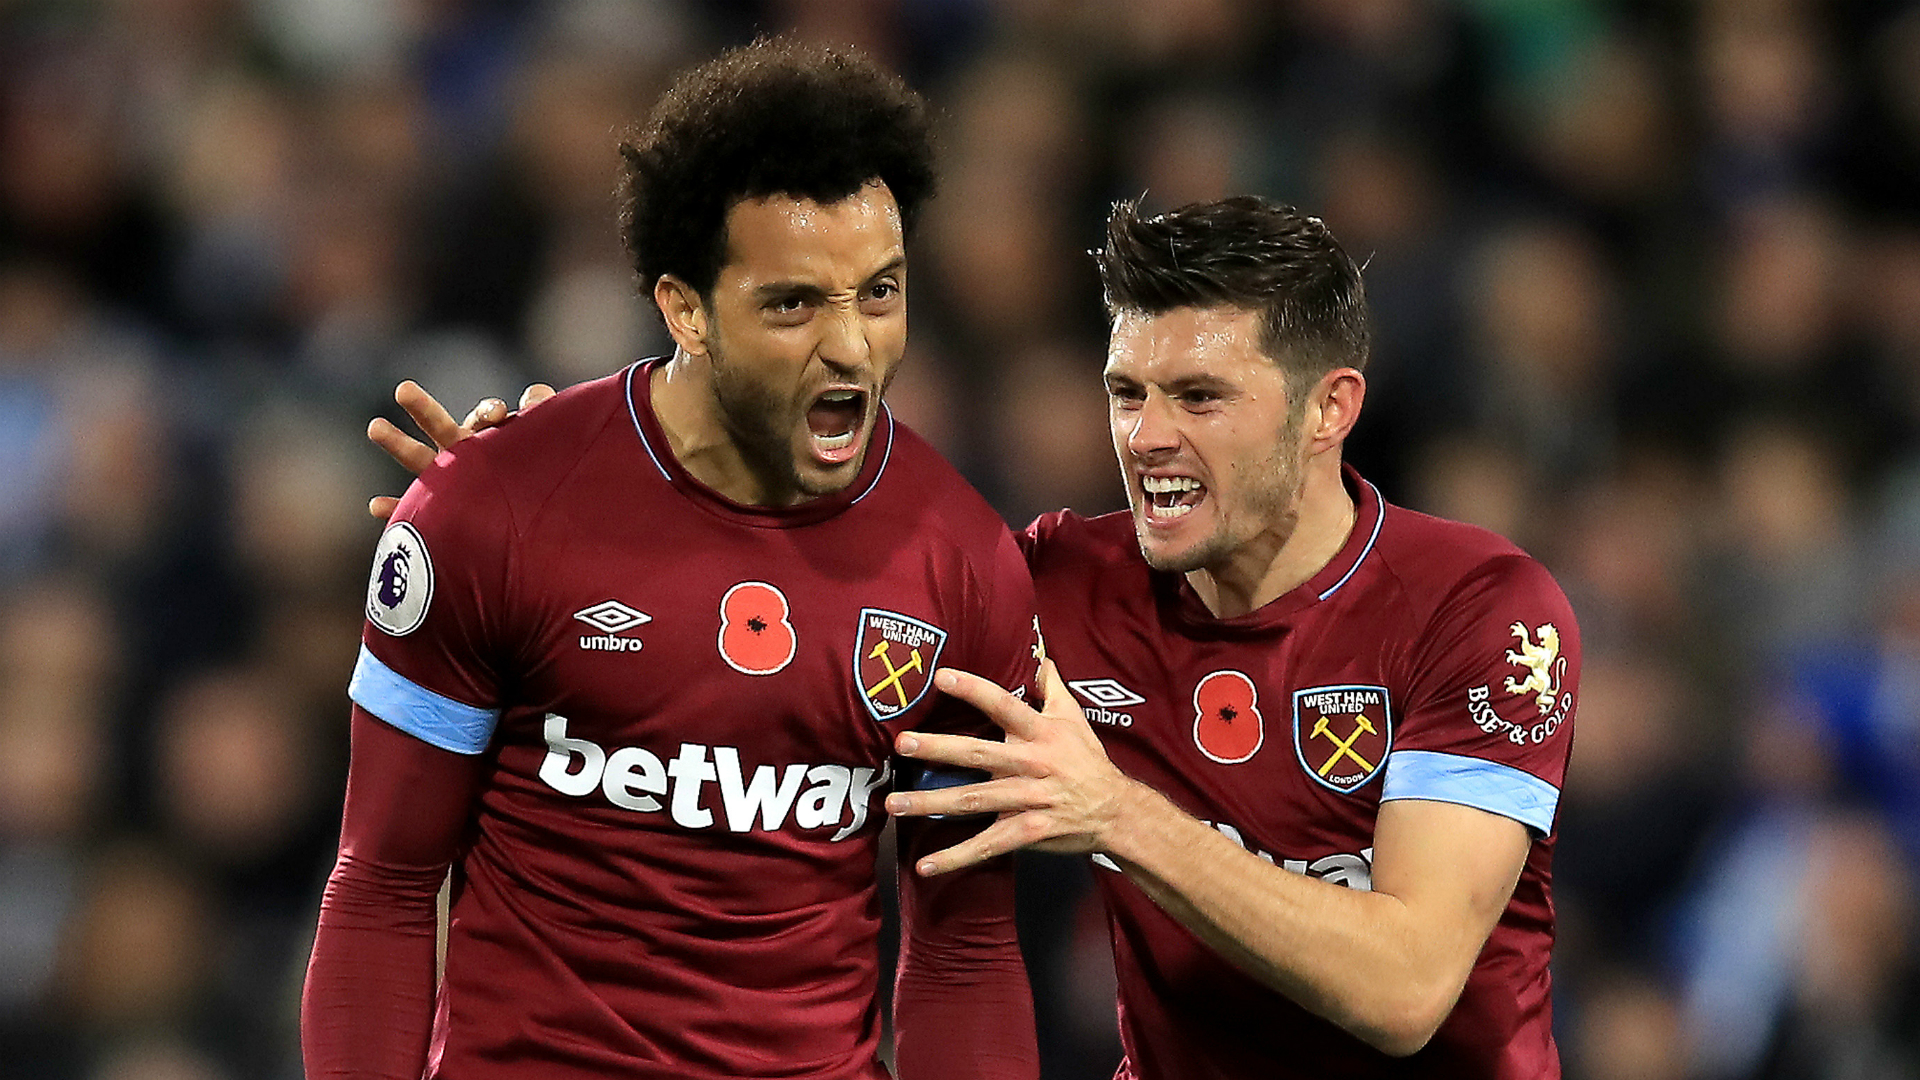 Huddersfield Town 1 West Ham 1: Felipe Anderson comes to Hammers rescue